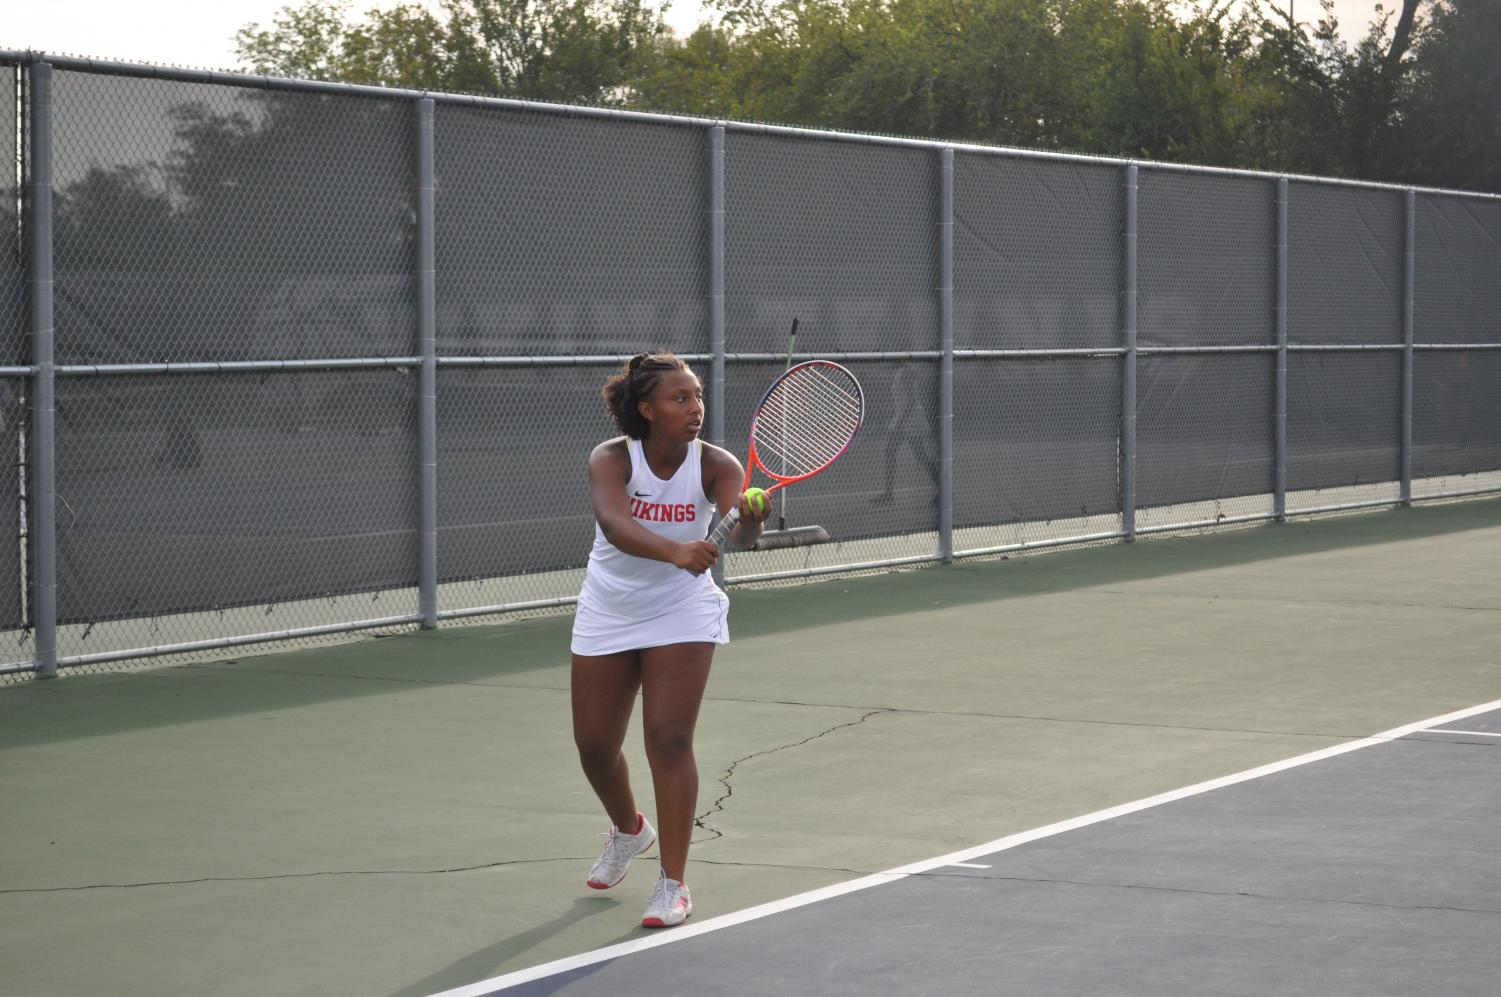 Junior Lauren Legardy is reaching high to serve to her opponent. The Vikings beat Lincoln-Way West in Wednesday's match.